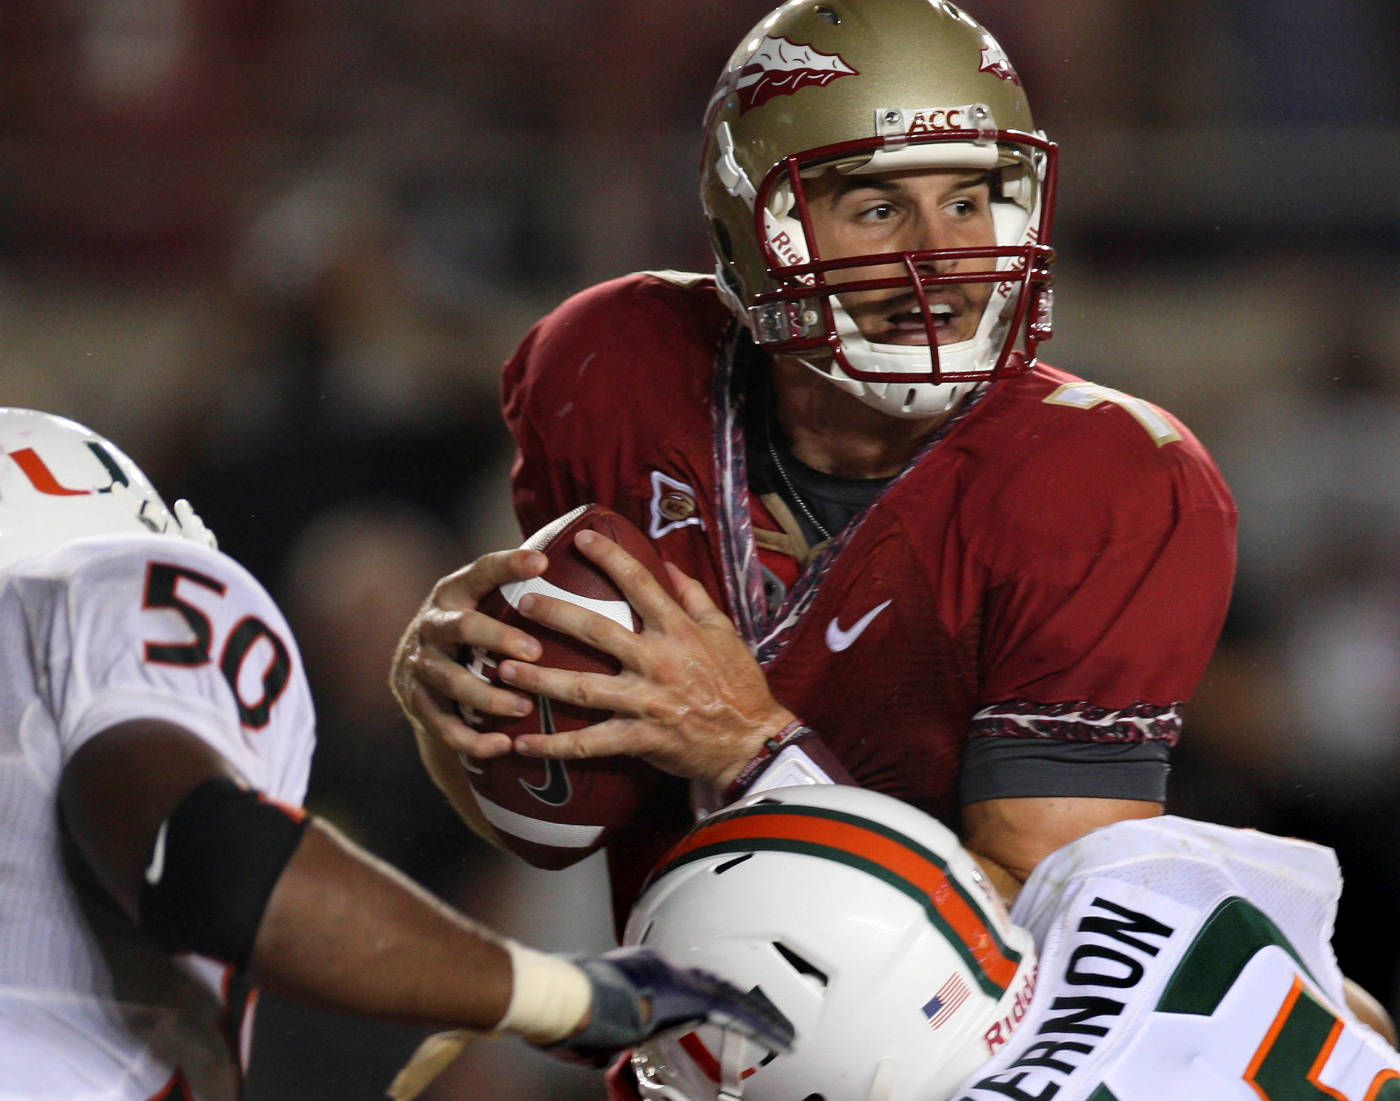 Florida State quarterback Christian Ponder, center, is stopped late in the fourth quarter by Miami linebacker Darryl Sharpton, left, and defensive lineman Olivier Vernon during an NCAA college football game Monday, Sept. 7, 2009, in Tallahassee, Fla. Miami won 38-34.(AP Photo/Phil Coale)